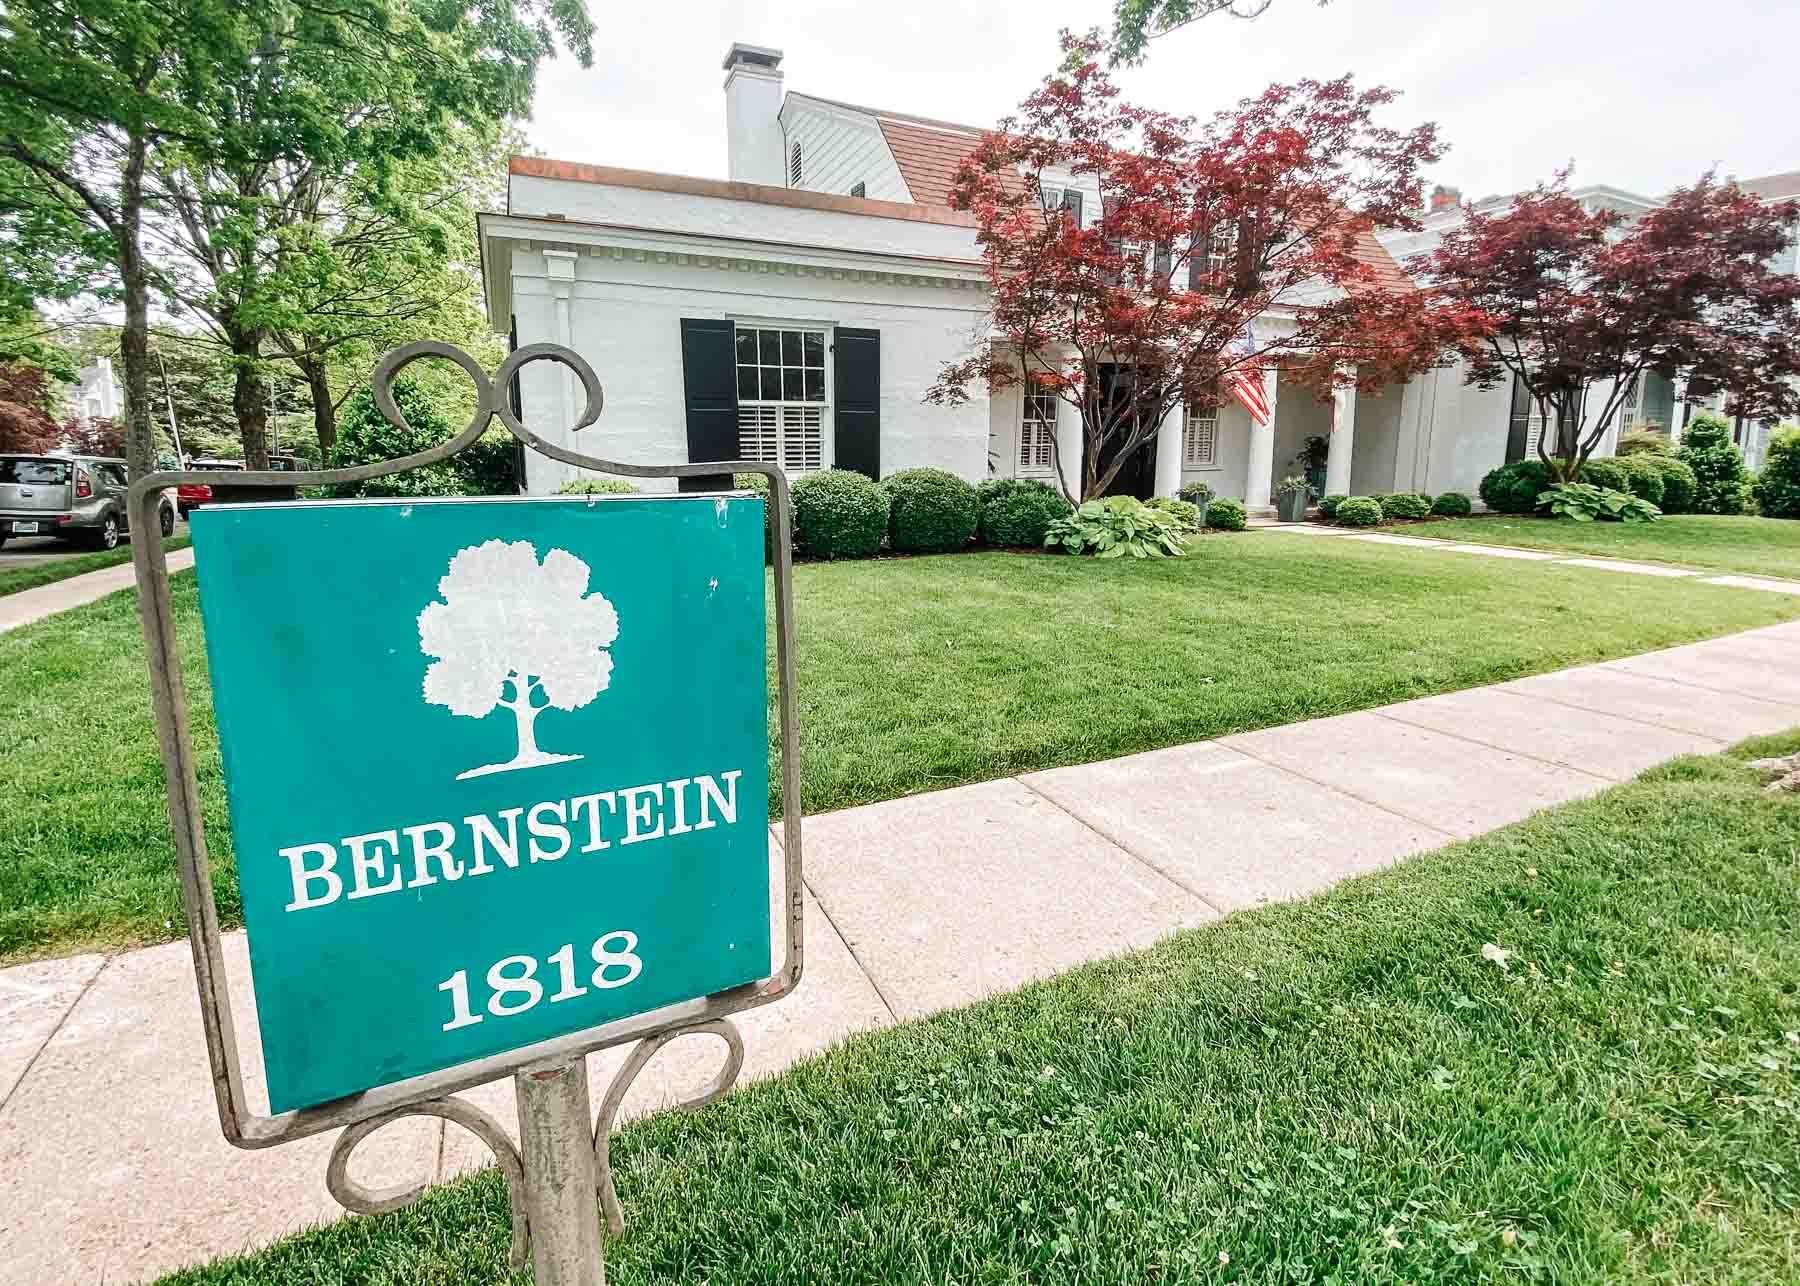 Historic home in Huntsville, Alabama with small sign outside that reads Bernstein 1818